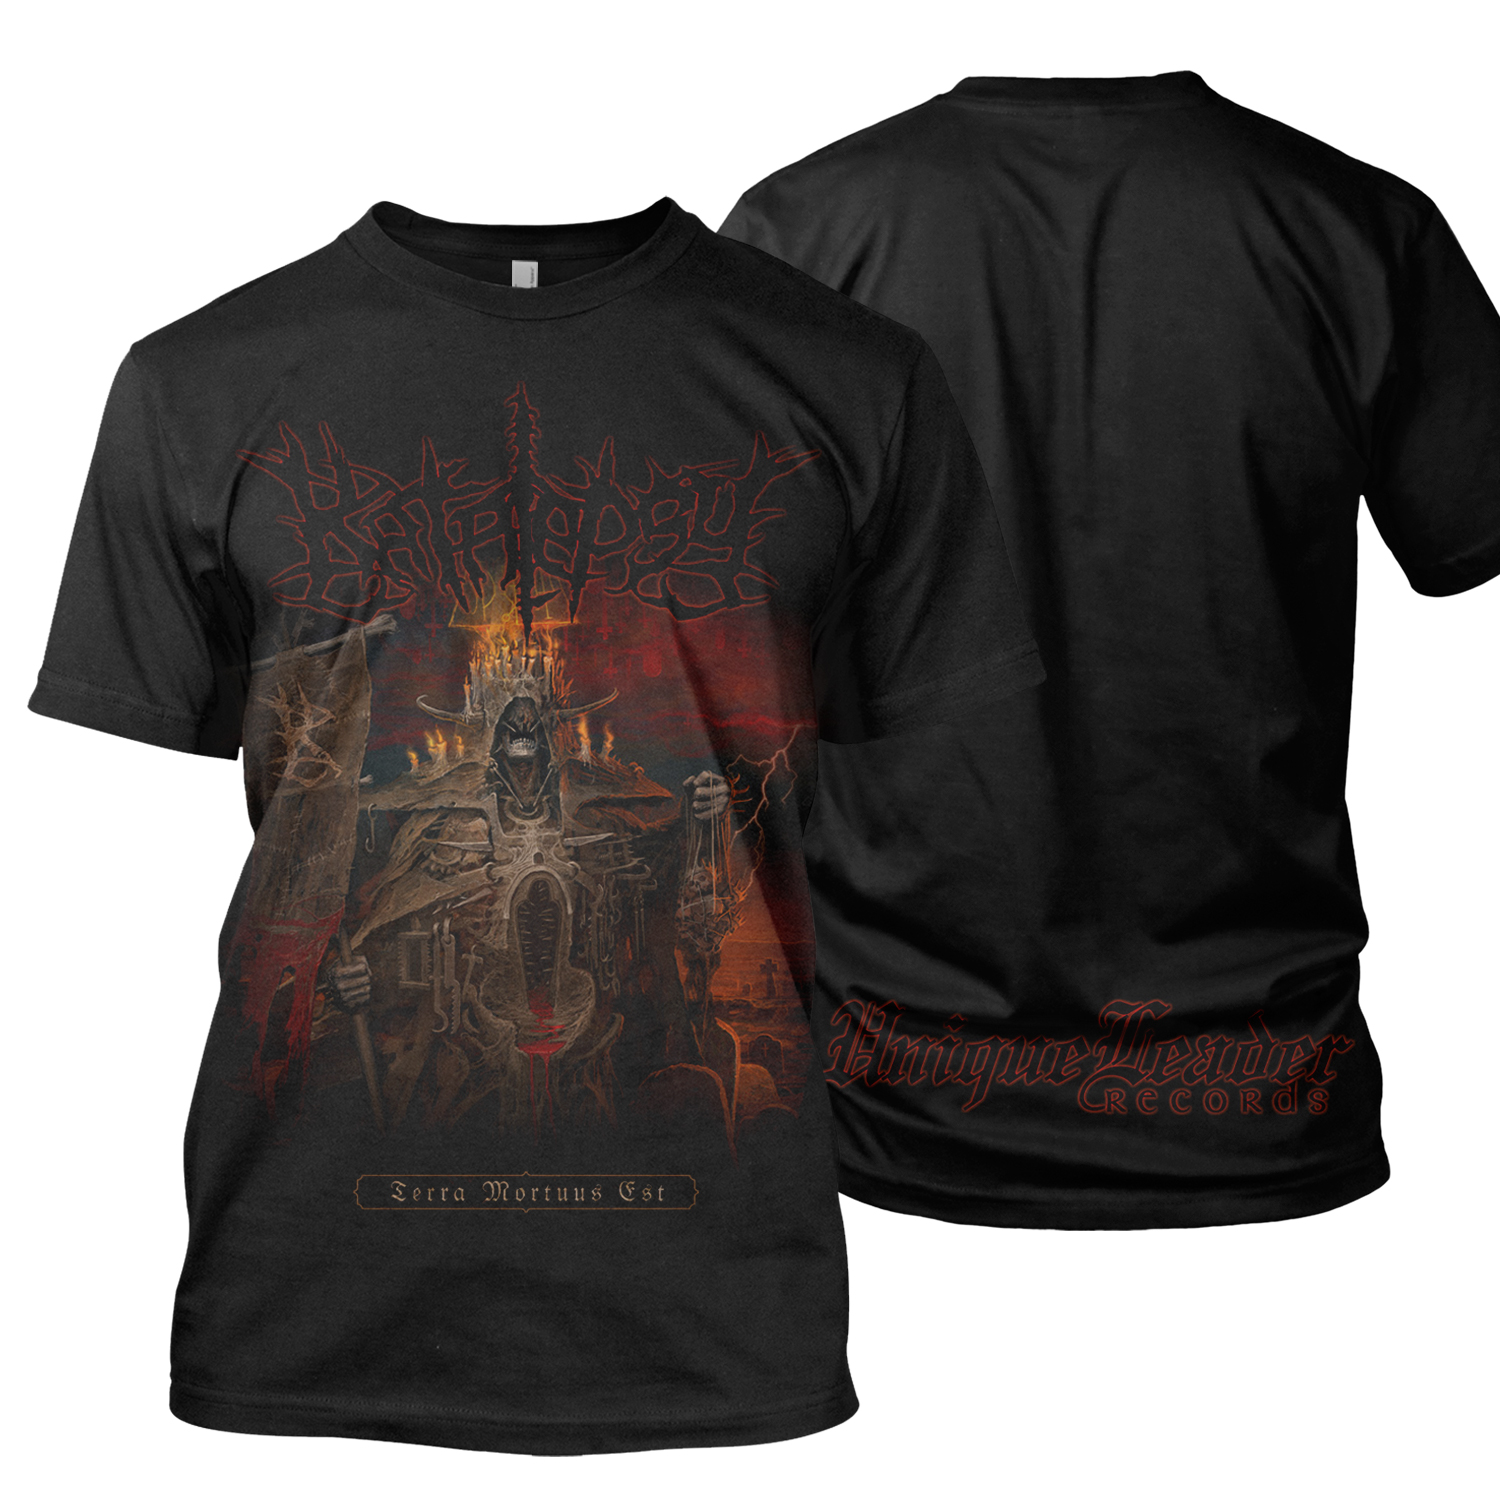 Terra Mortuus CD + Tee Bundle